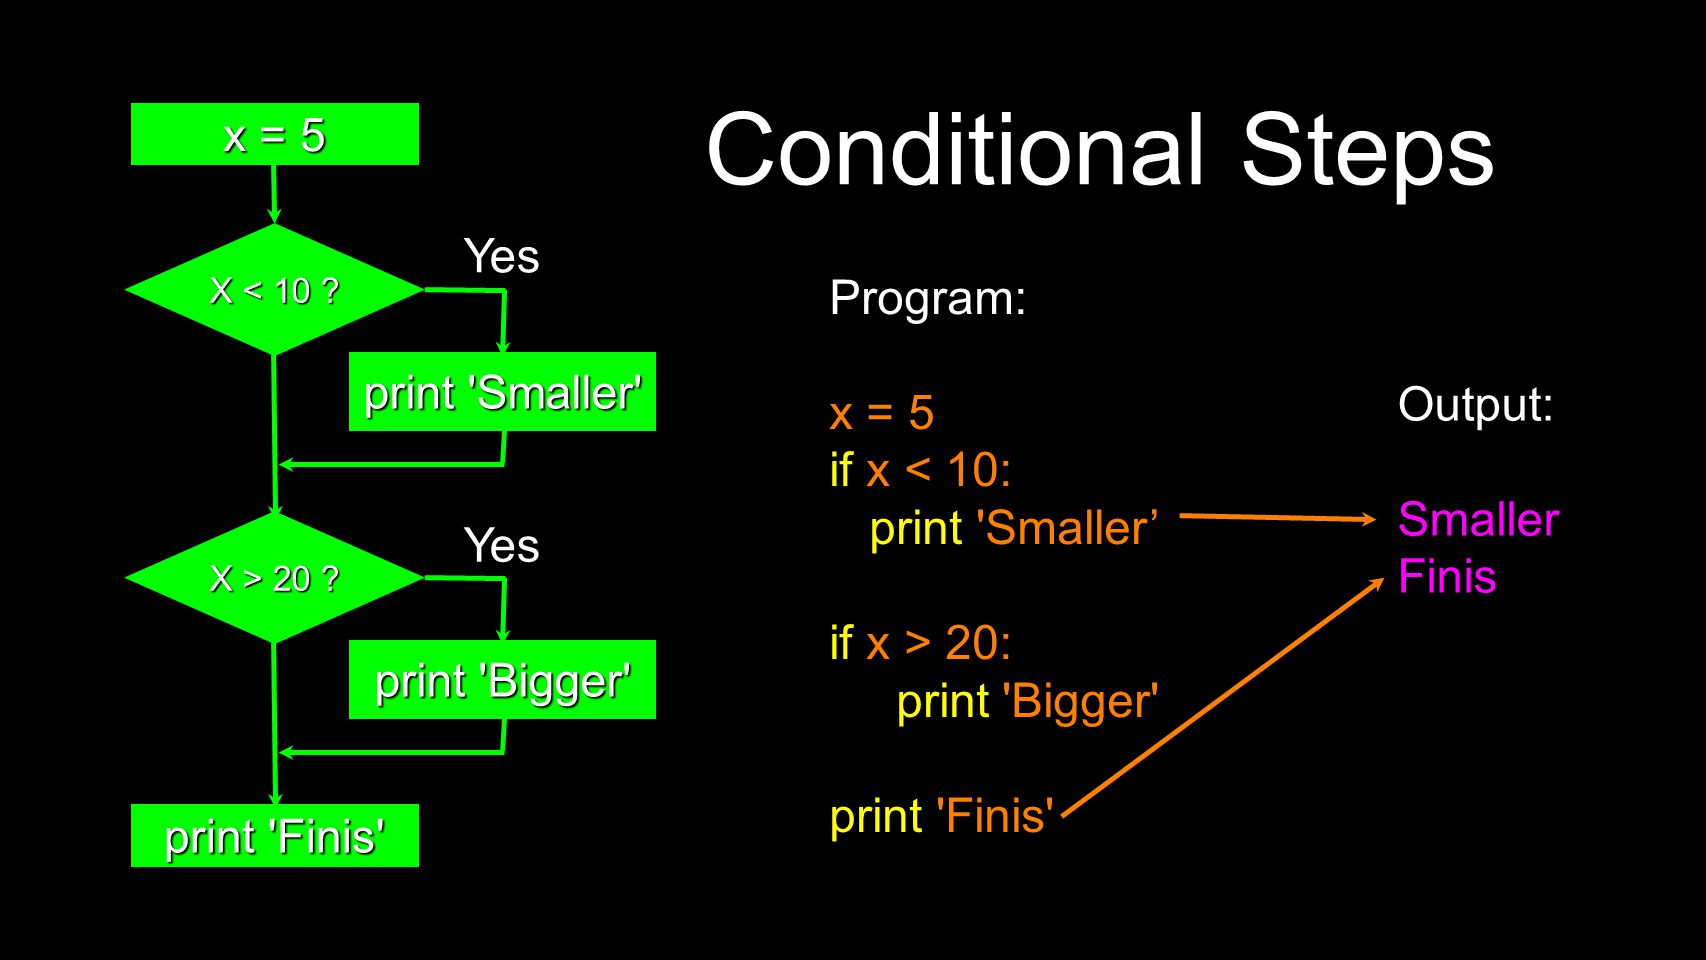 Conditional Steps Output: Smaller Finis Program: x = 5 if x < 10: print Smaller' if x > 20: print Bigger print Finis x = 5 X < 10 .